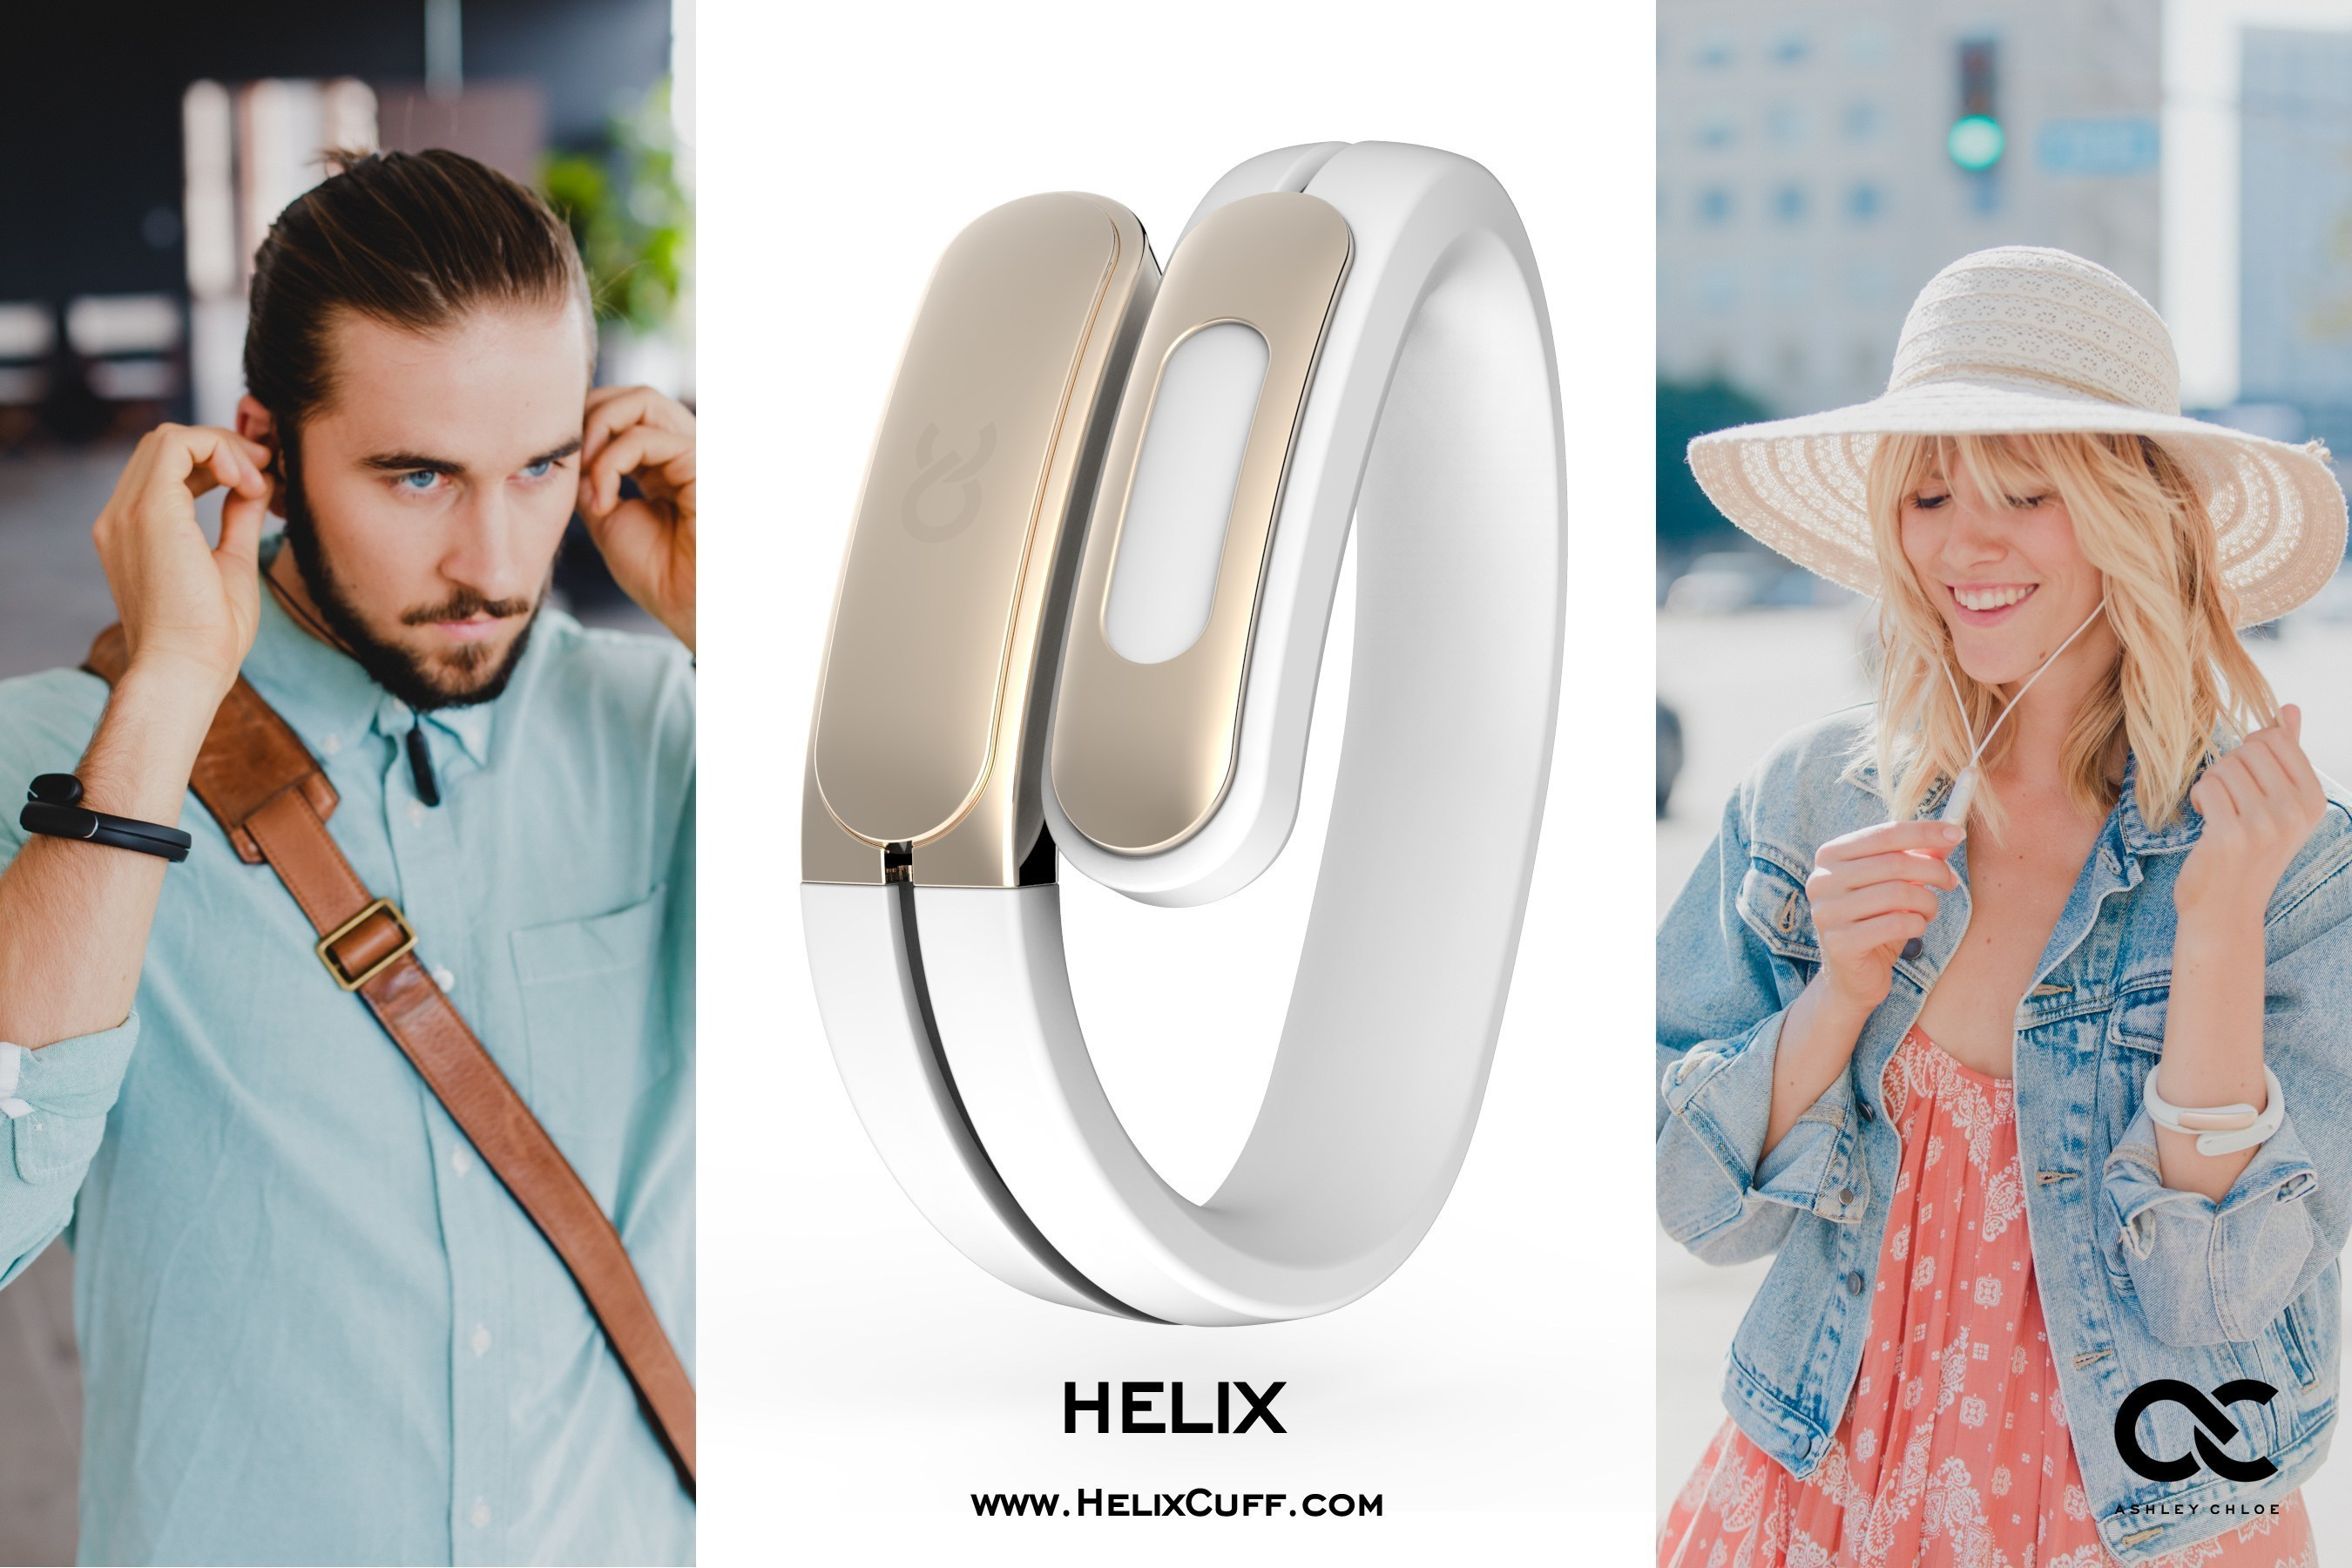 Ashley Chloe has launched a Kickstarter campaign for the Helix Cuff, a digital wearable accessory that unites fashion with function. Helix harnesses Bluetooth wireless technology to pair tiny in-ear headphones cleverly hidden in a stylish cuff with your favorite iOS and Android mobile, wearable and smart devices. Helix is offered in white, black and bright red with embellishments in 18K gold, champagne gold or silver aluminum. Helix offers stereo-sound quality, a built-in microphone, and track/call...